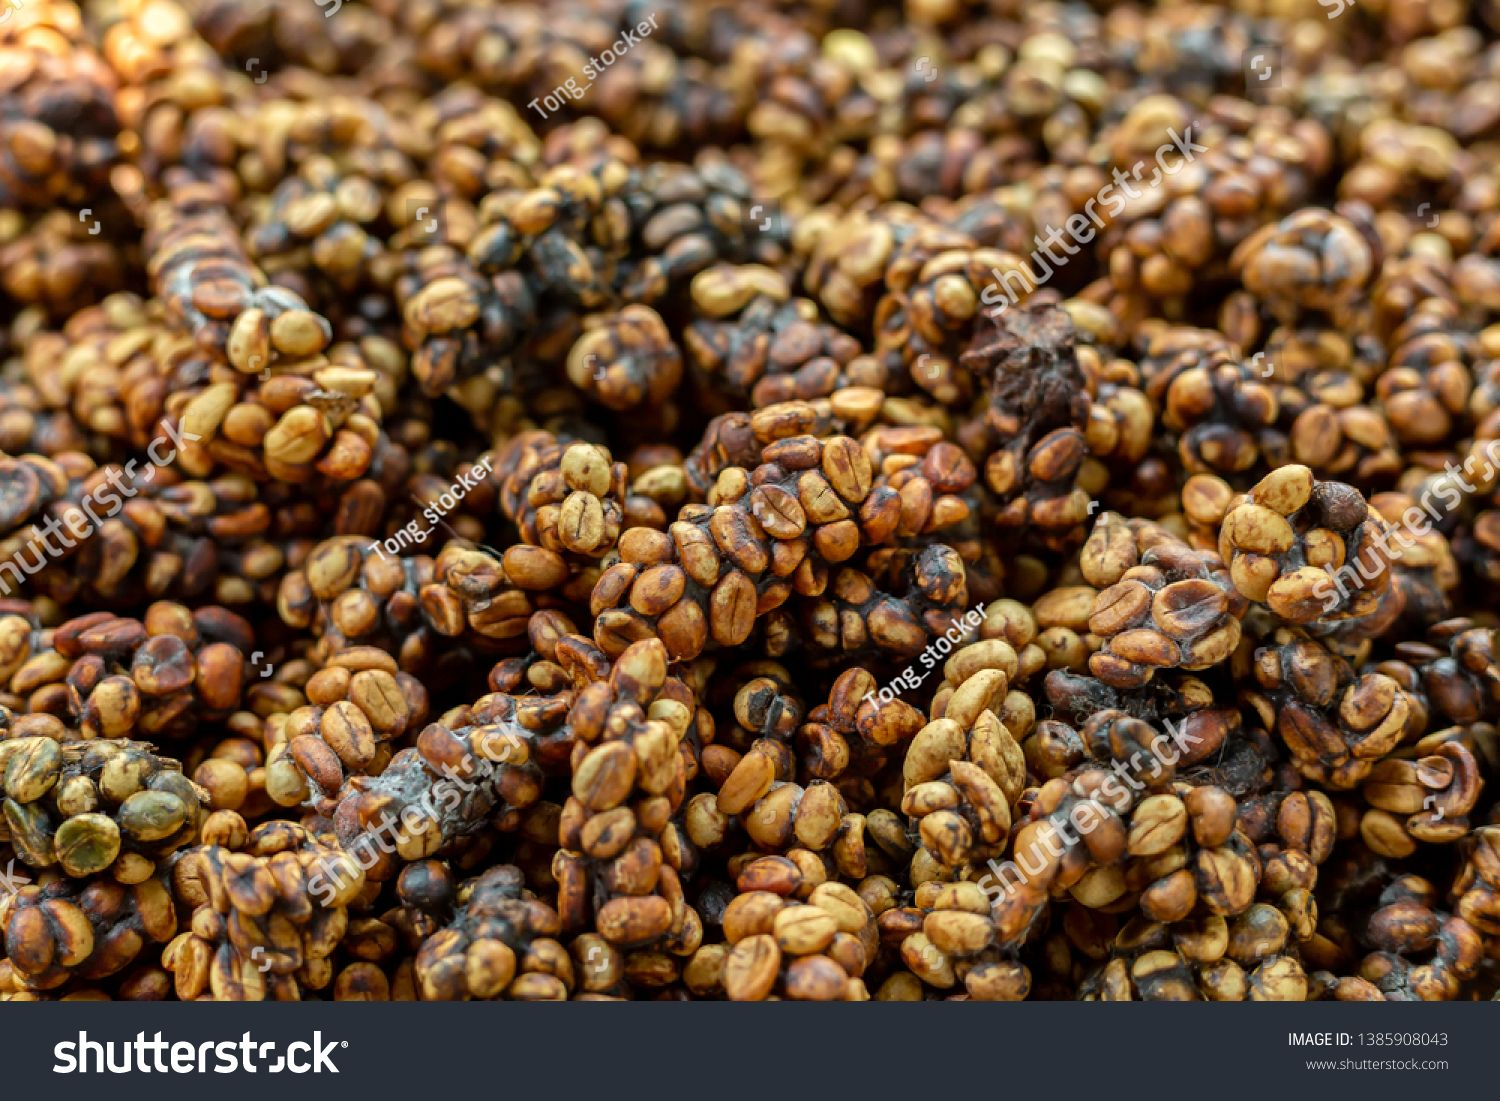 Kopi luwak or civet coffee, is one of the world's most